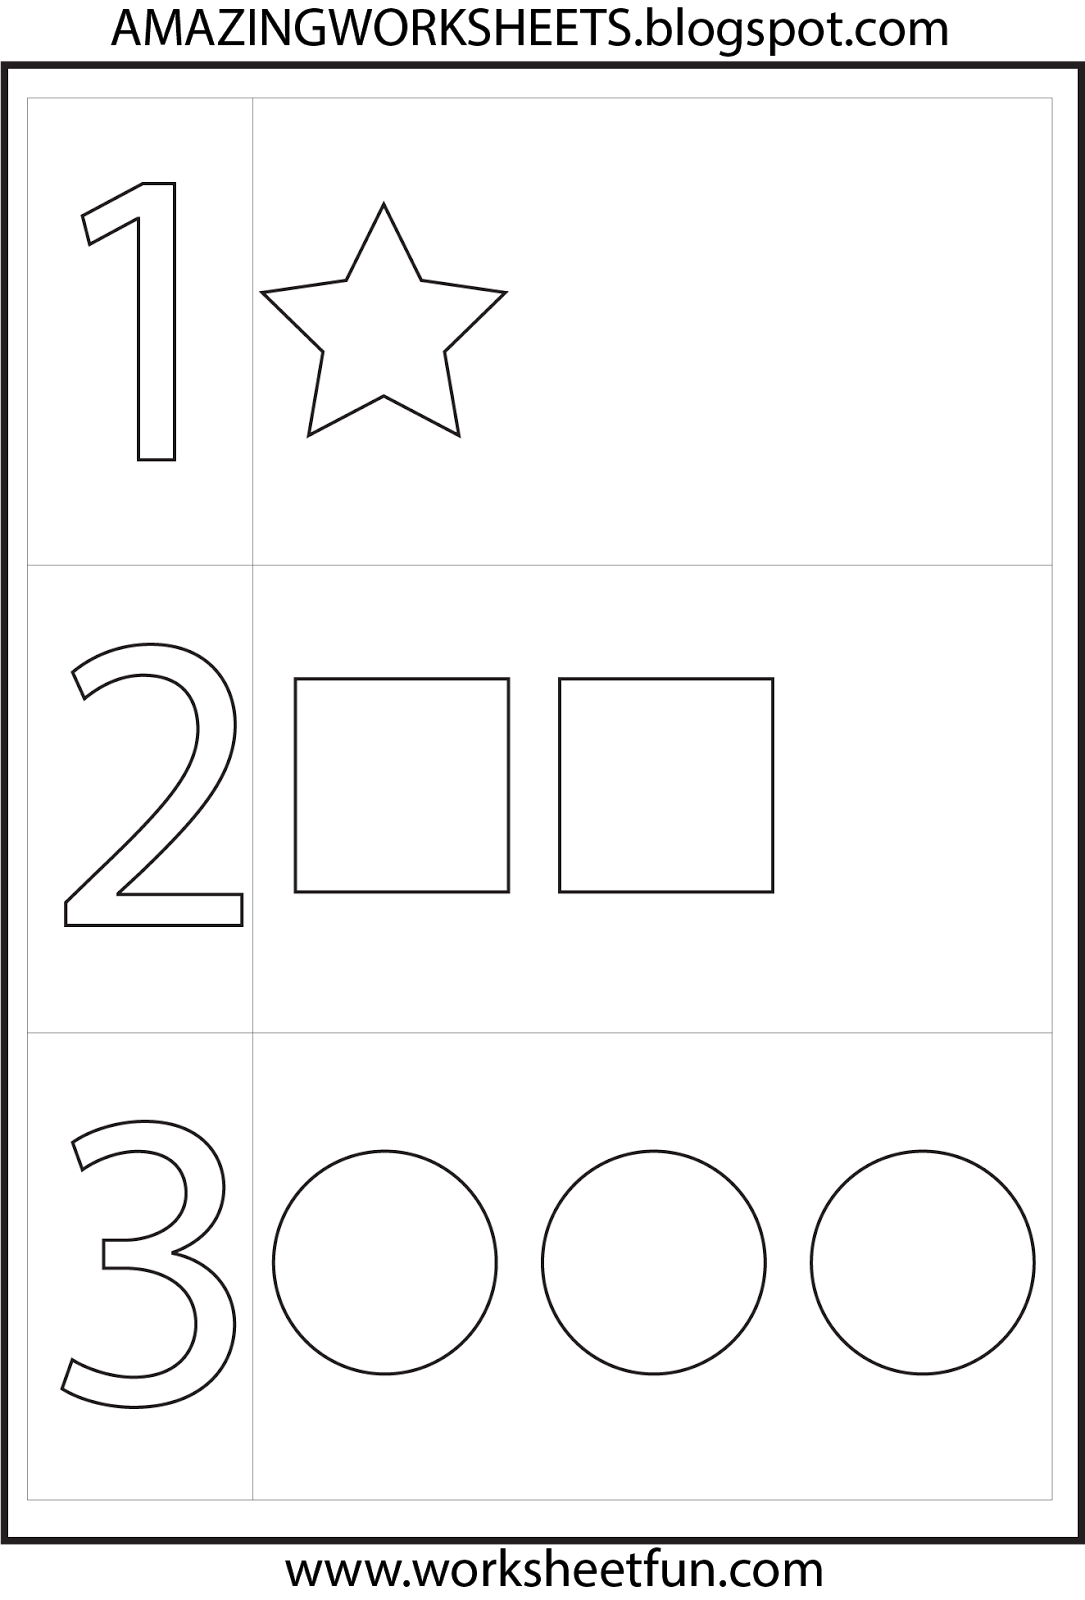 Free Number 1 Worksheets Pictures - Math Free Preschool ...